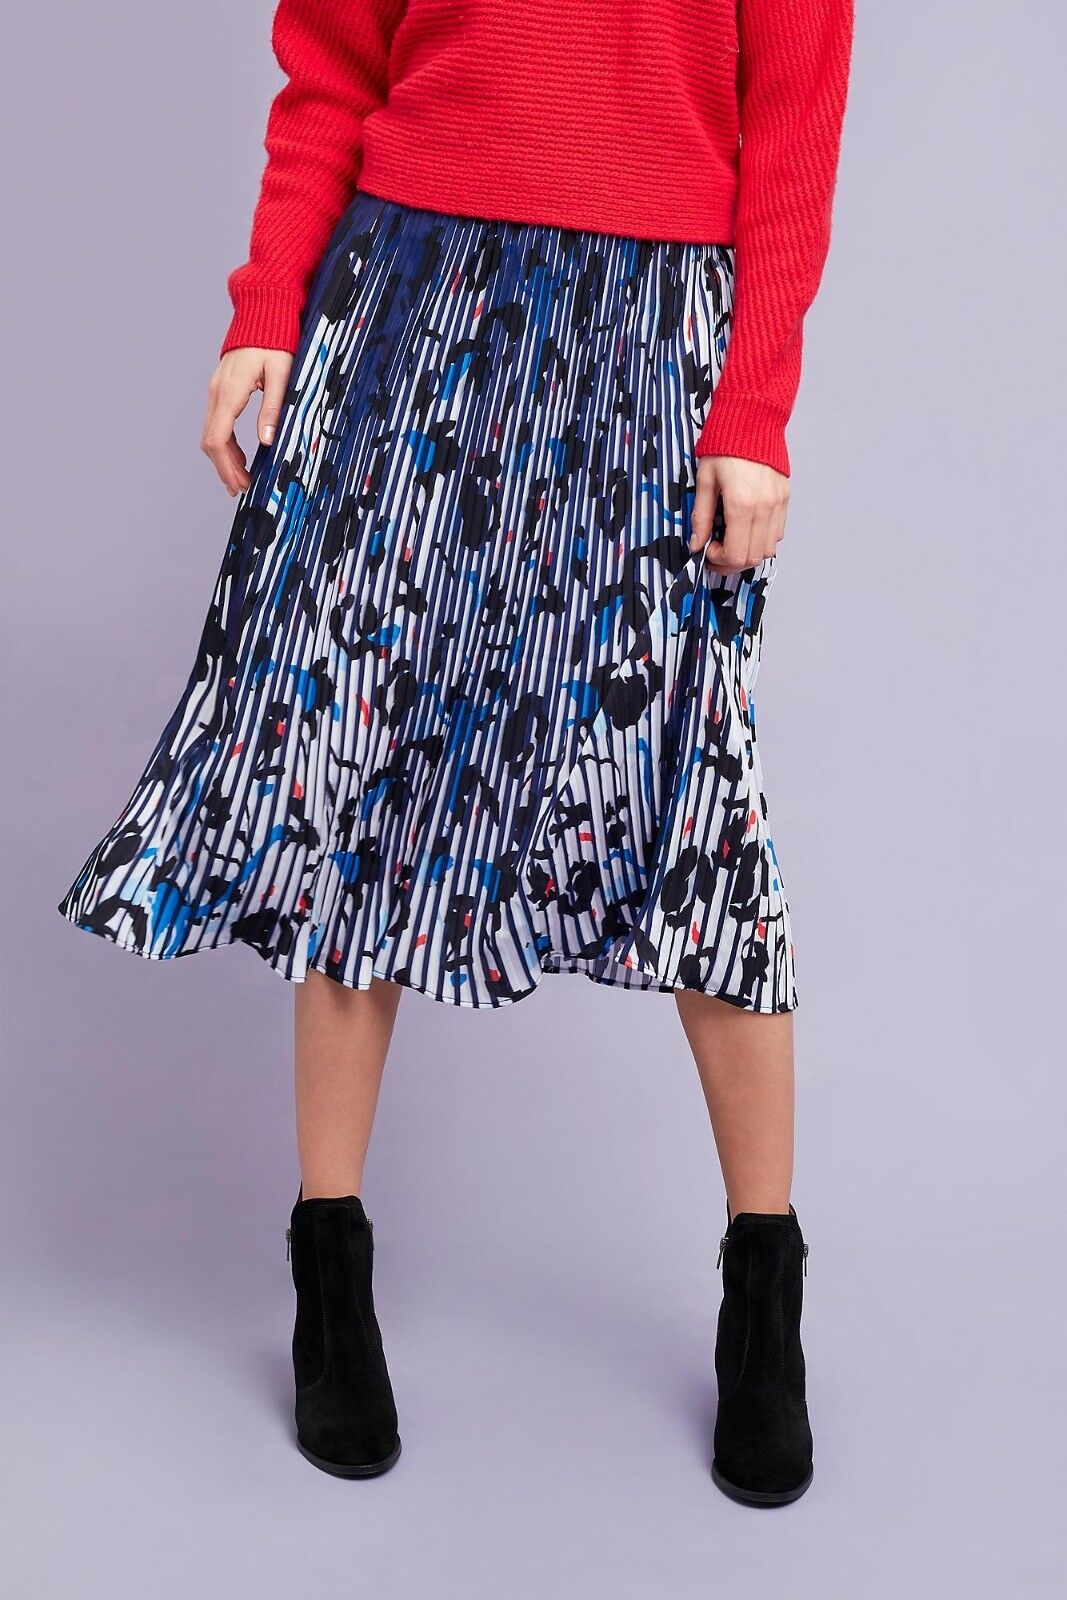 Seen Worn Kept Midi Skirt Leopard bluee Laurene Pleated 2 xs small anthropologie